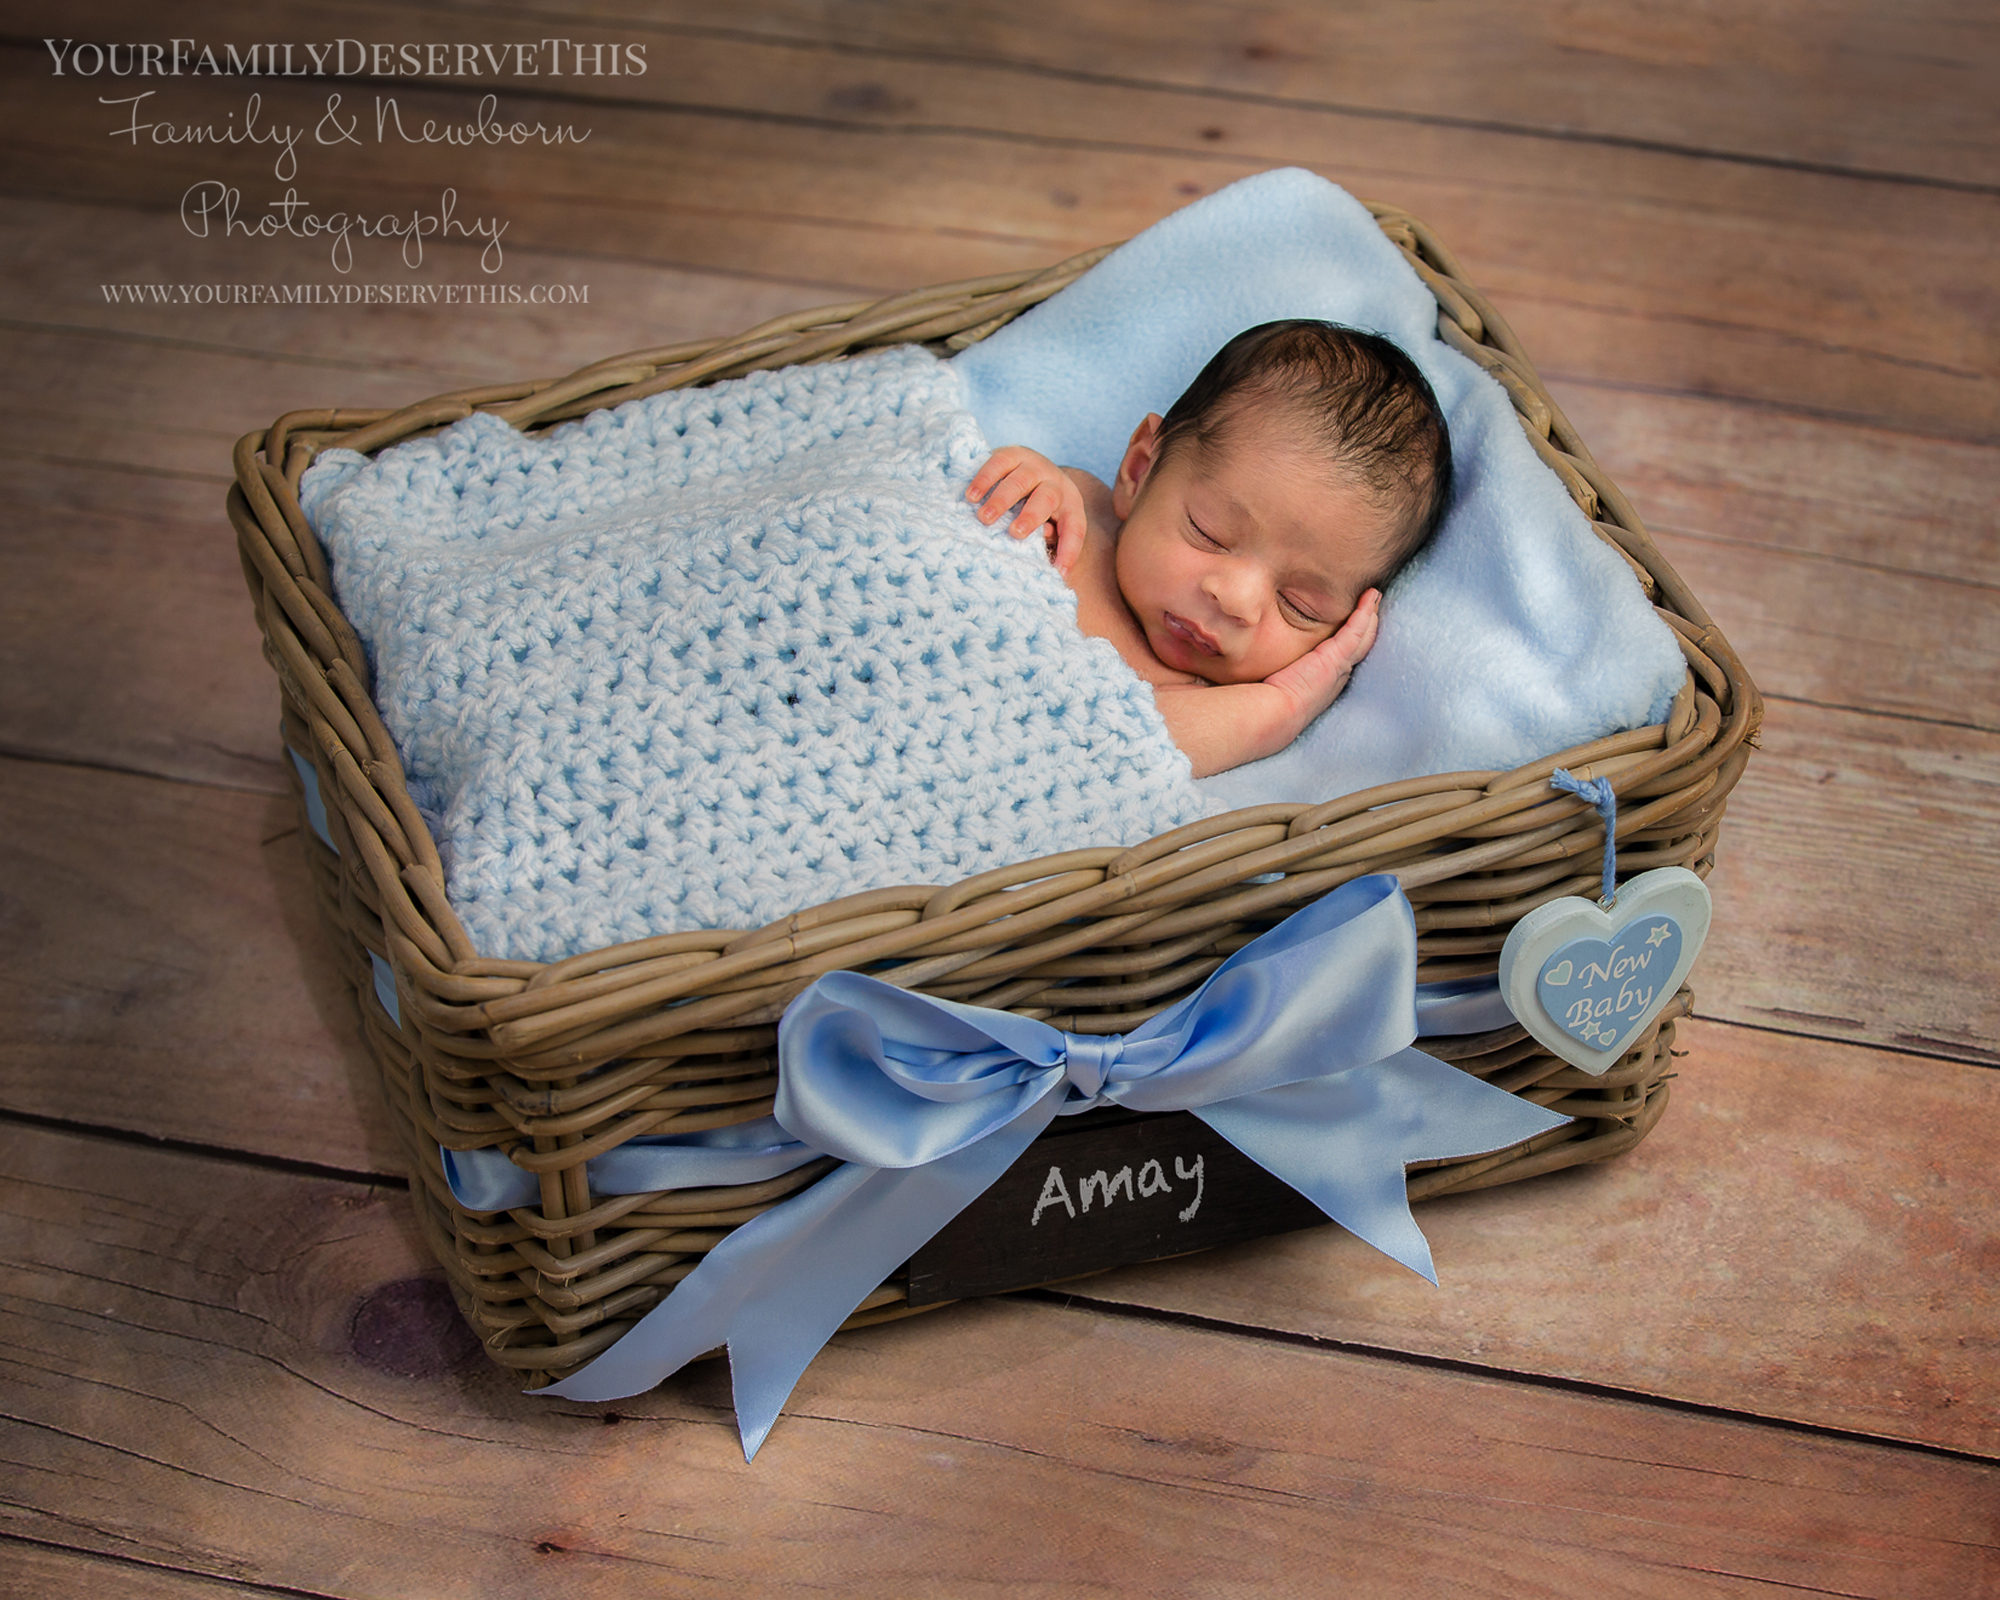 Our baby in a basket shot makes a wonderful birth announcement or thank you card. Hampshire Newborn Photography Studio www.yourfamilydeservethis.com